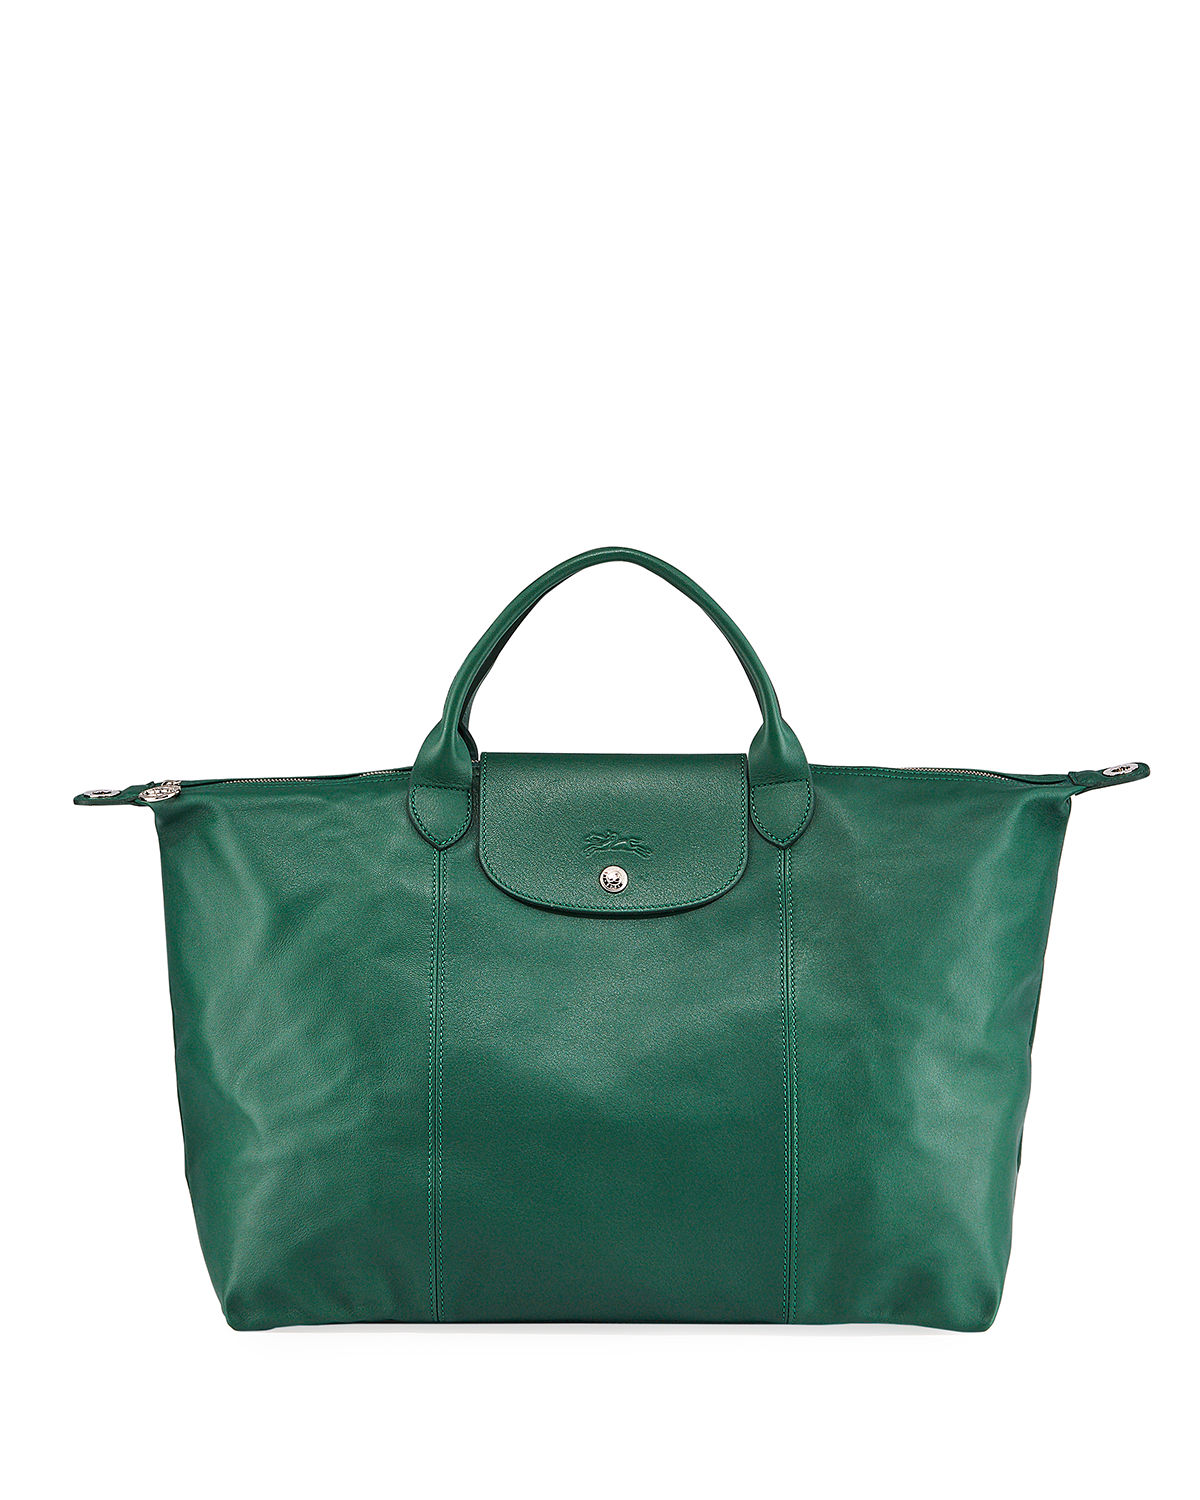 Le Pliage Cuir Large Tote Bag